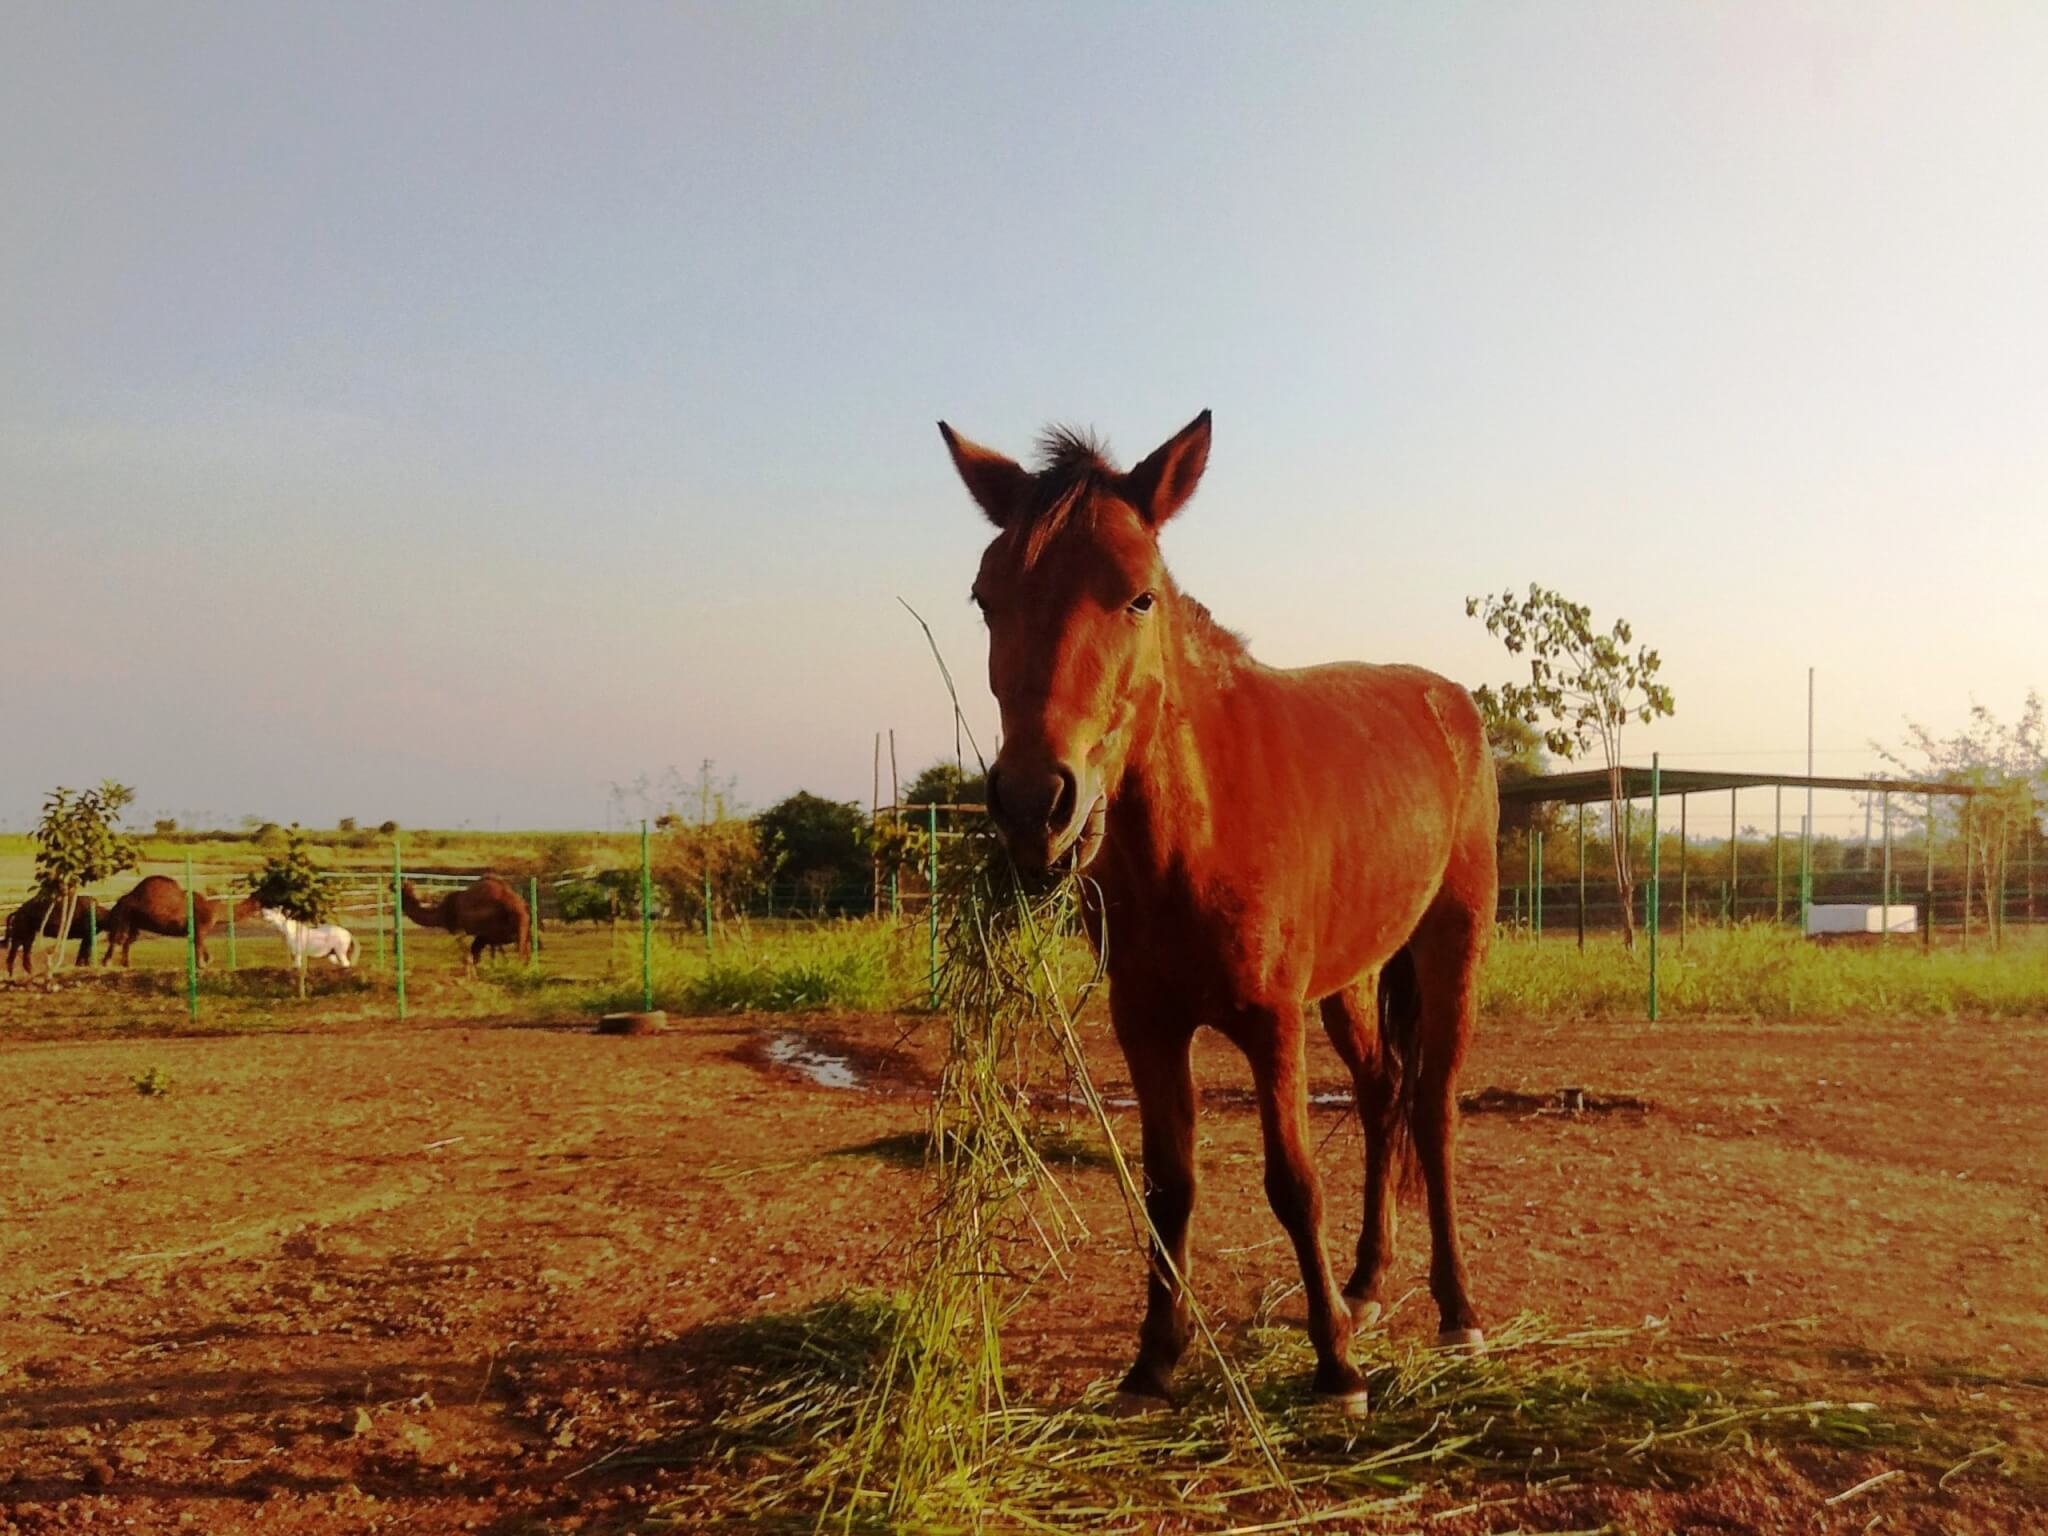 A brown pony chews some fresh green grass as she looks into the camera.